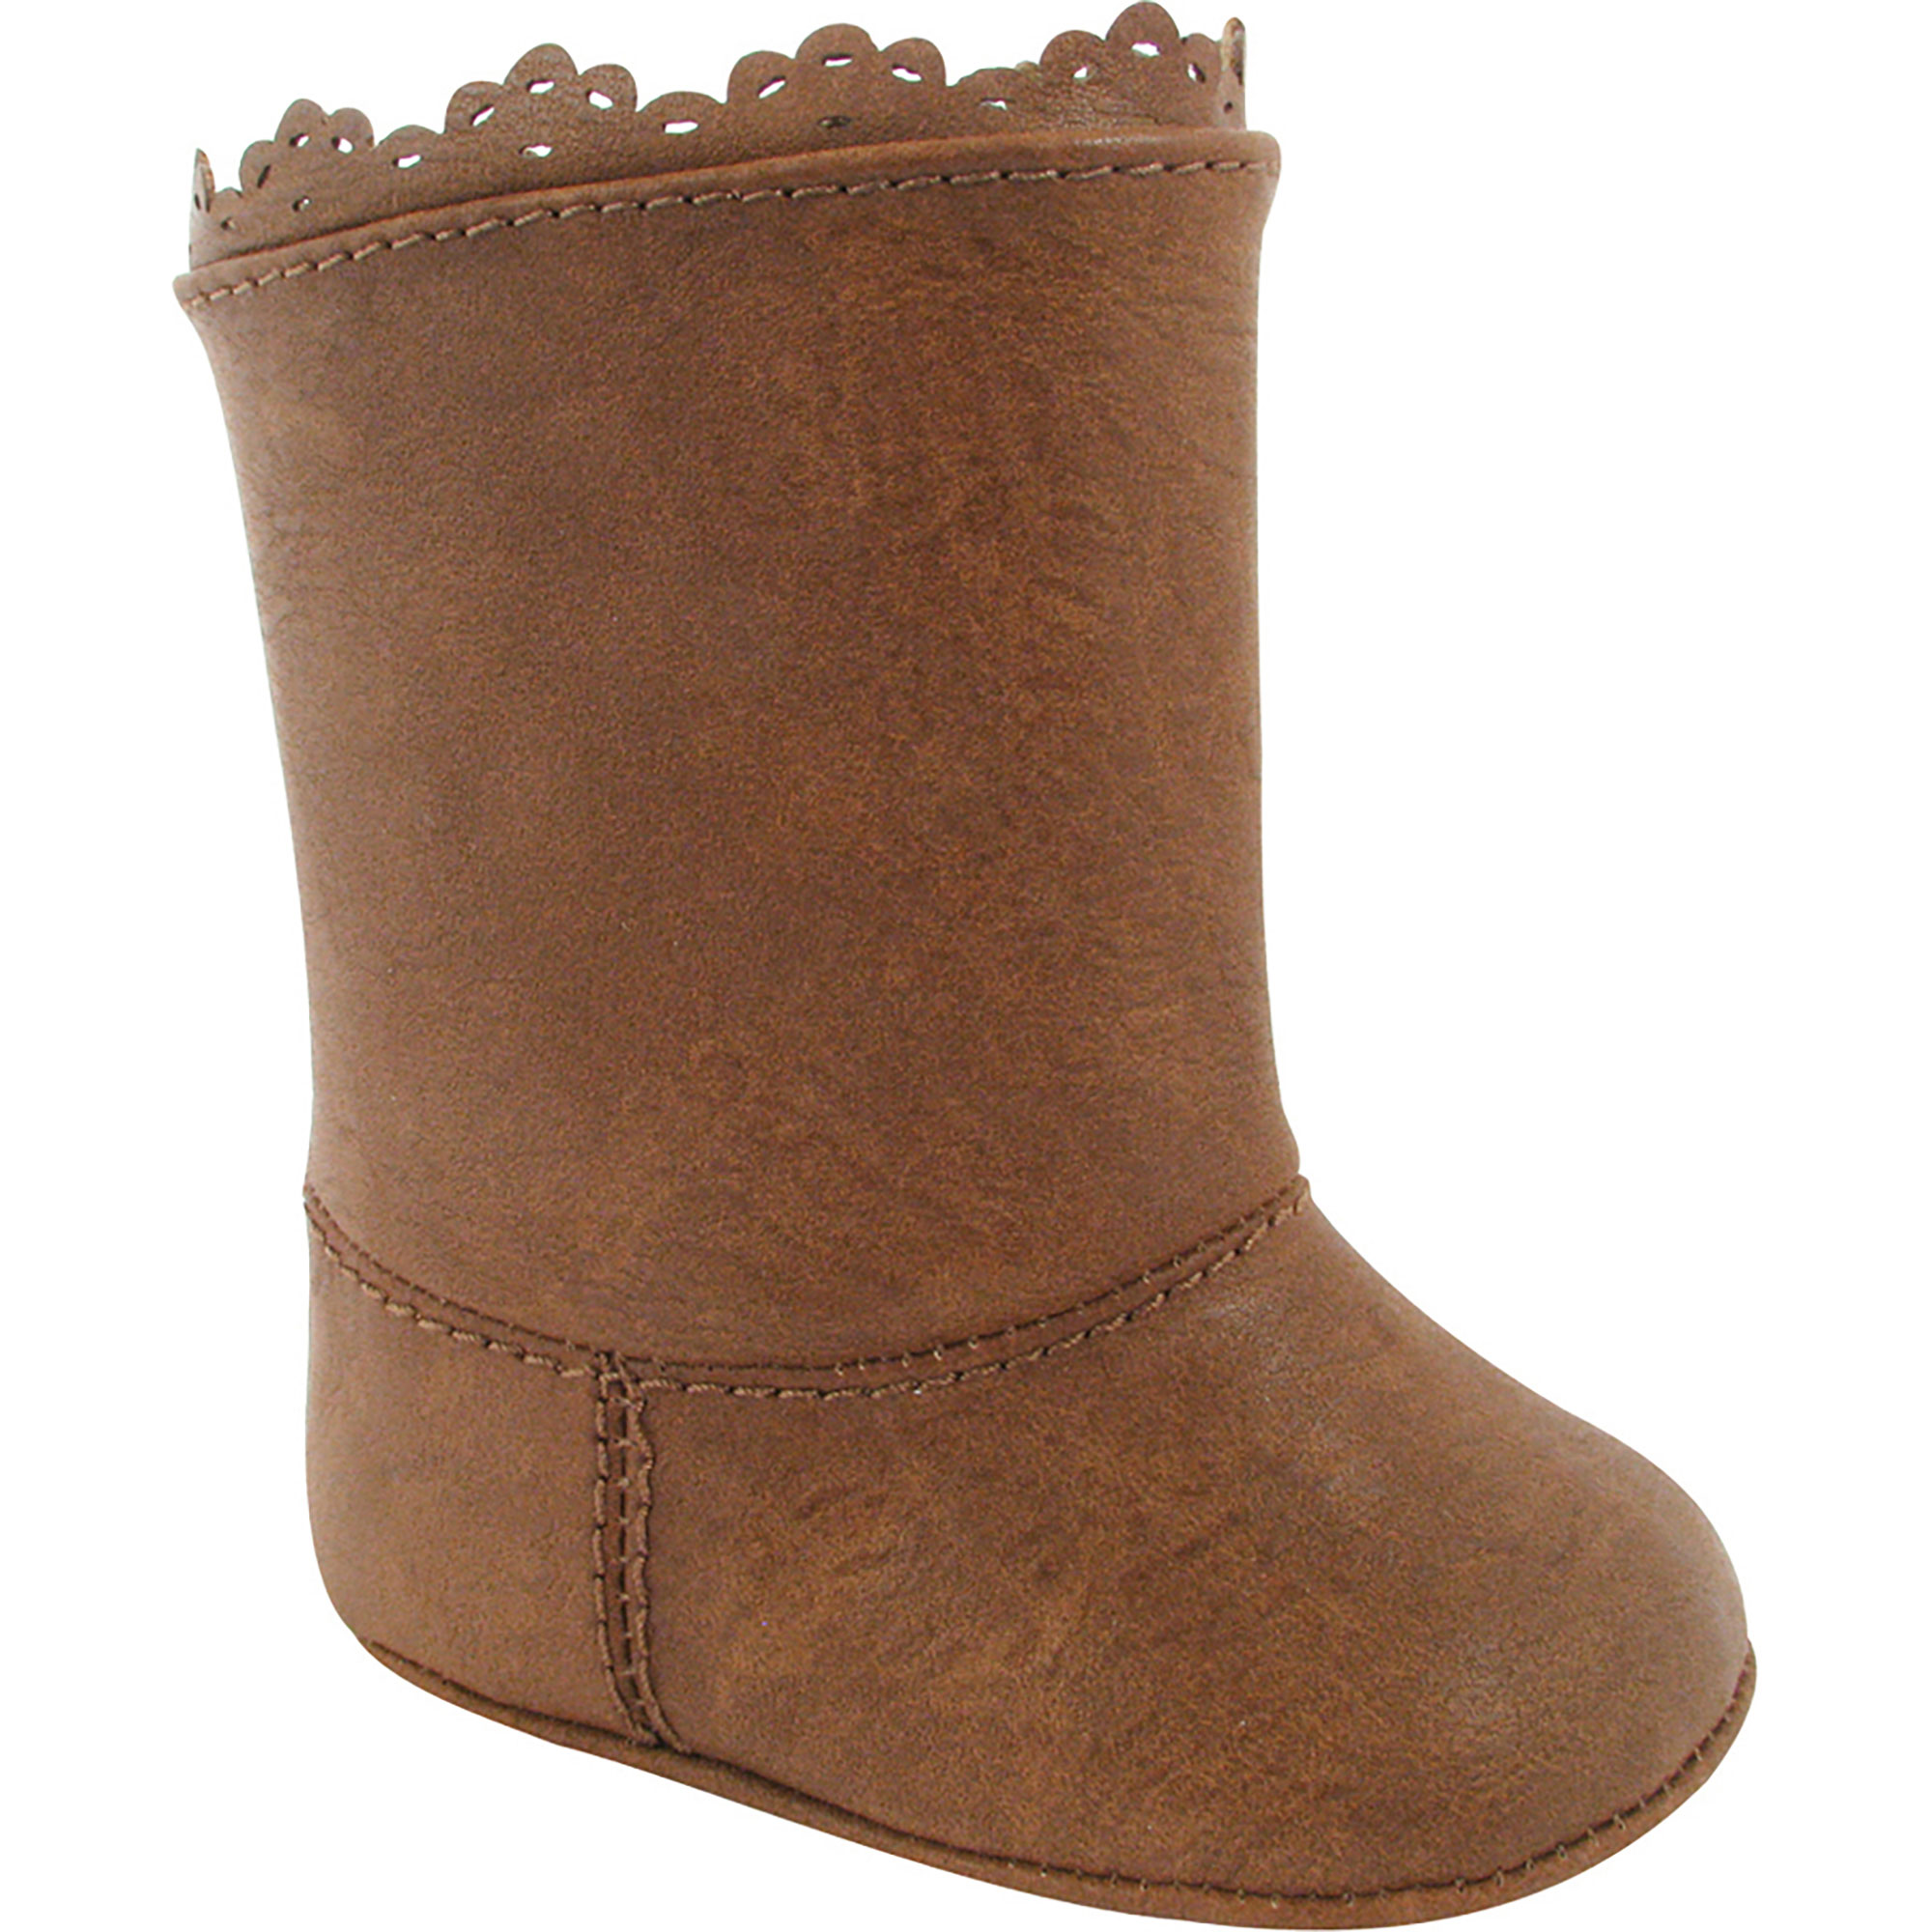 Baby Deer Baby Infant Girls Brown Boots (Crib Shoes) - Tan Brown ...